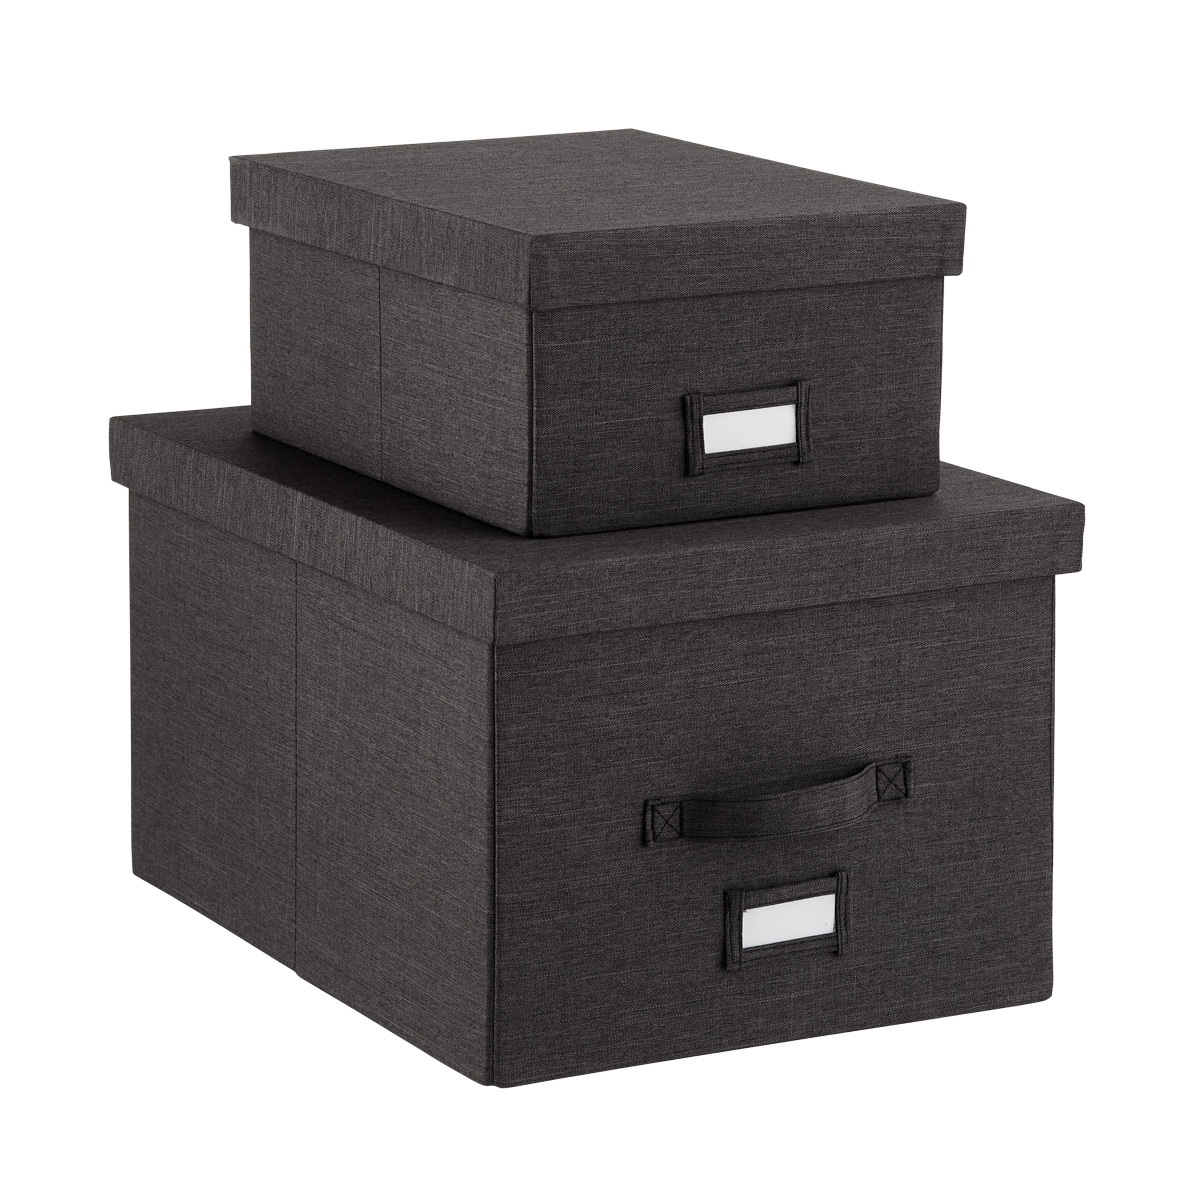 Black Cambridge Storage Boxes